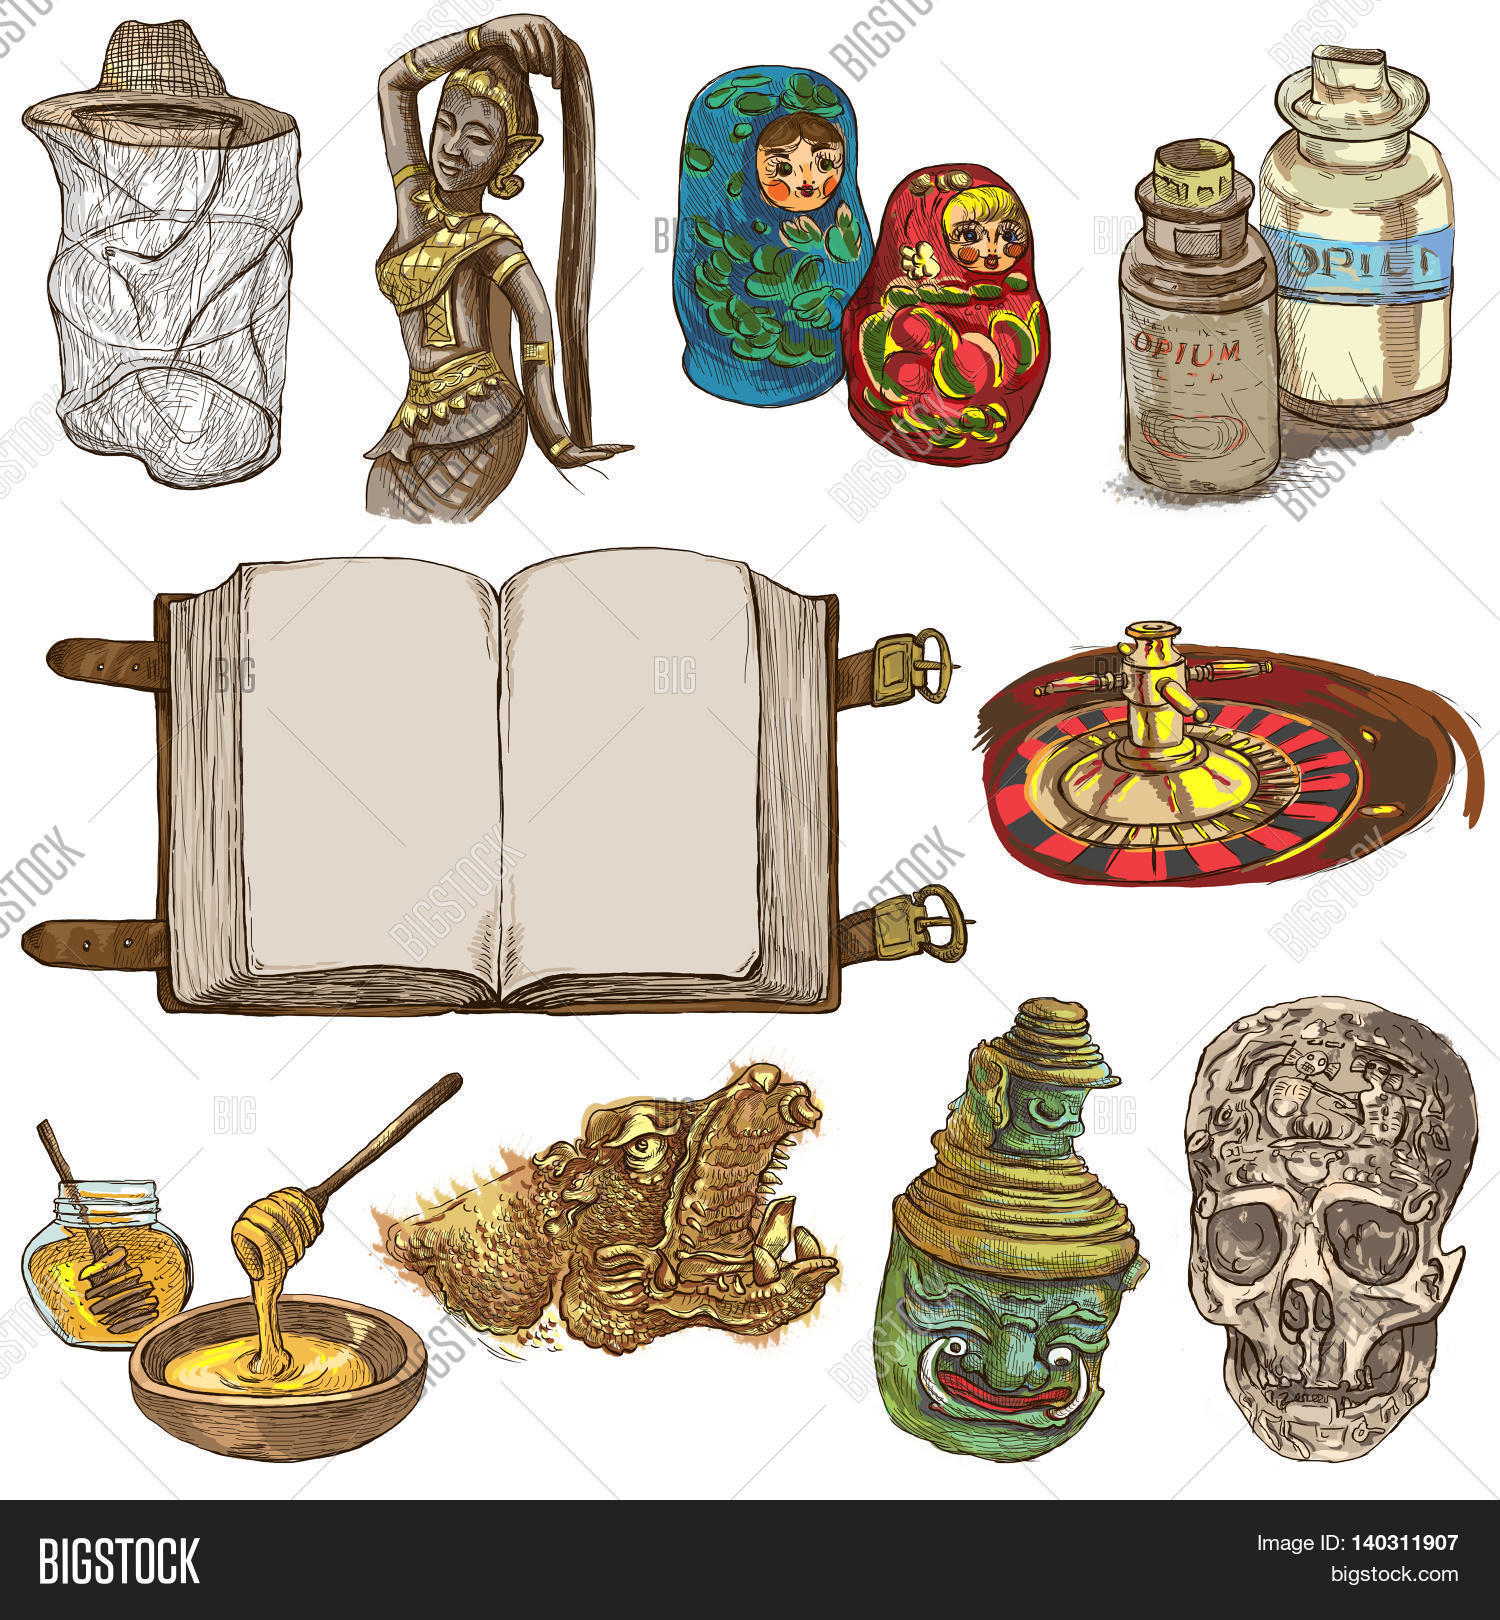 Objects Different Image Photo Free Trial Bigstock